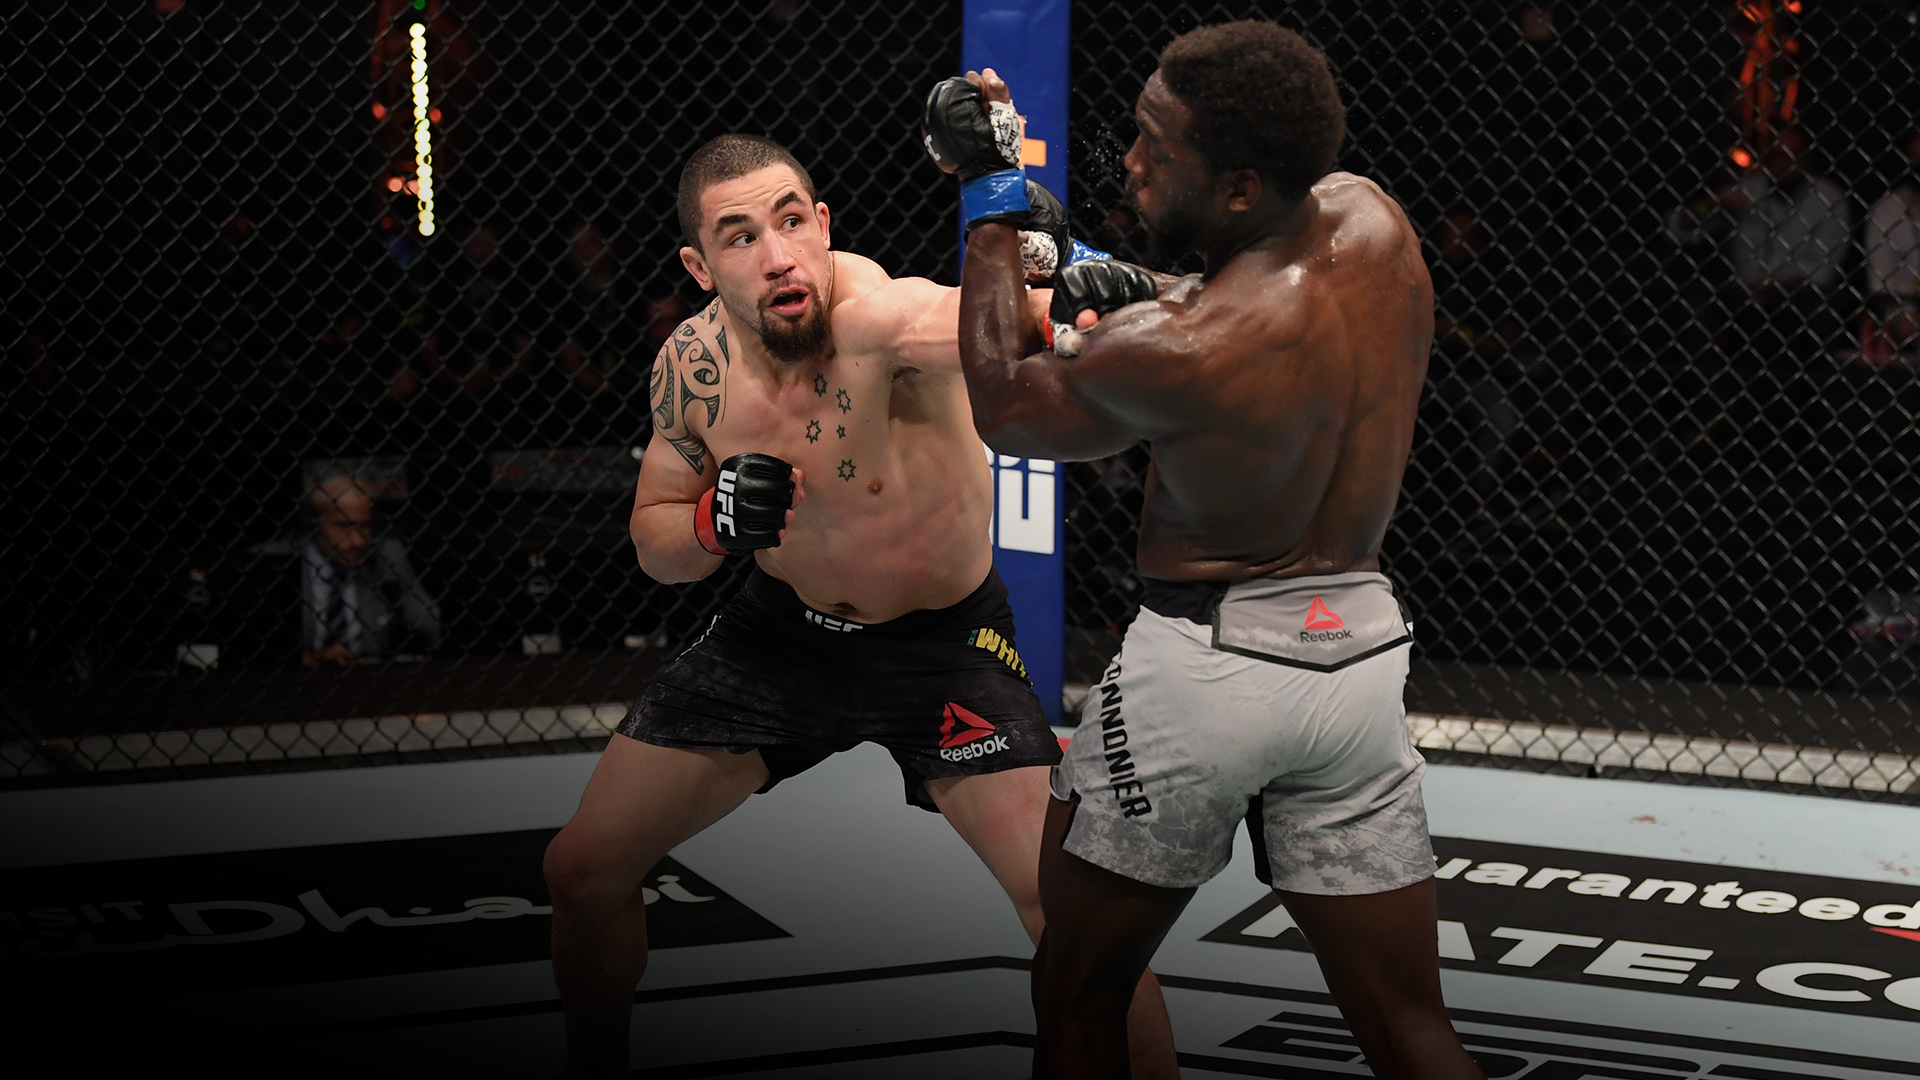 Robert Whittaker of Australia punches Jared Cannonier in their middleweight bout during the UFC 254 event on October 25, 2020 on UFC Fight Island, Abu Dhabi, United Arab Emirates. (Photo by Josh Hedges/Zuffa LLC via Getty Images)